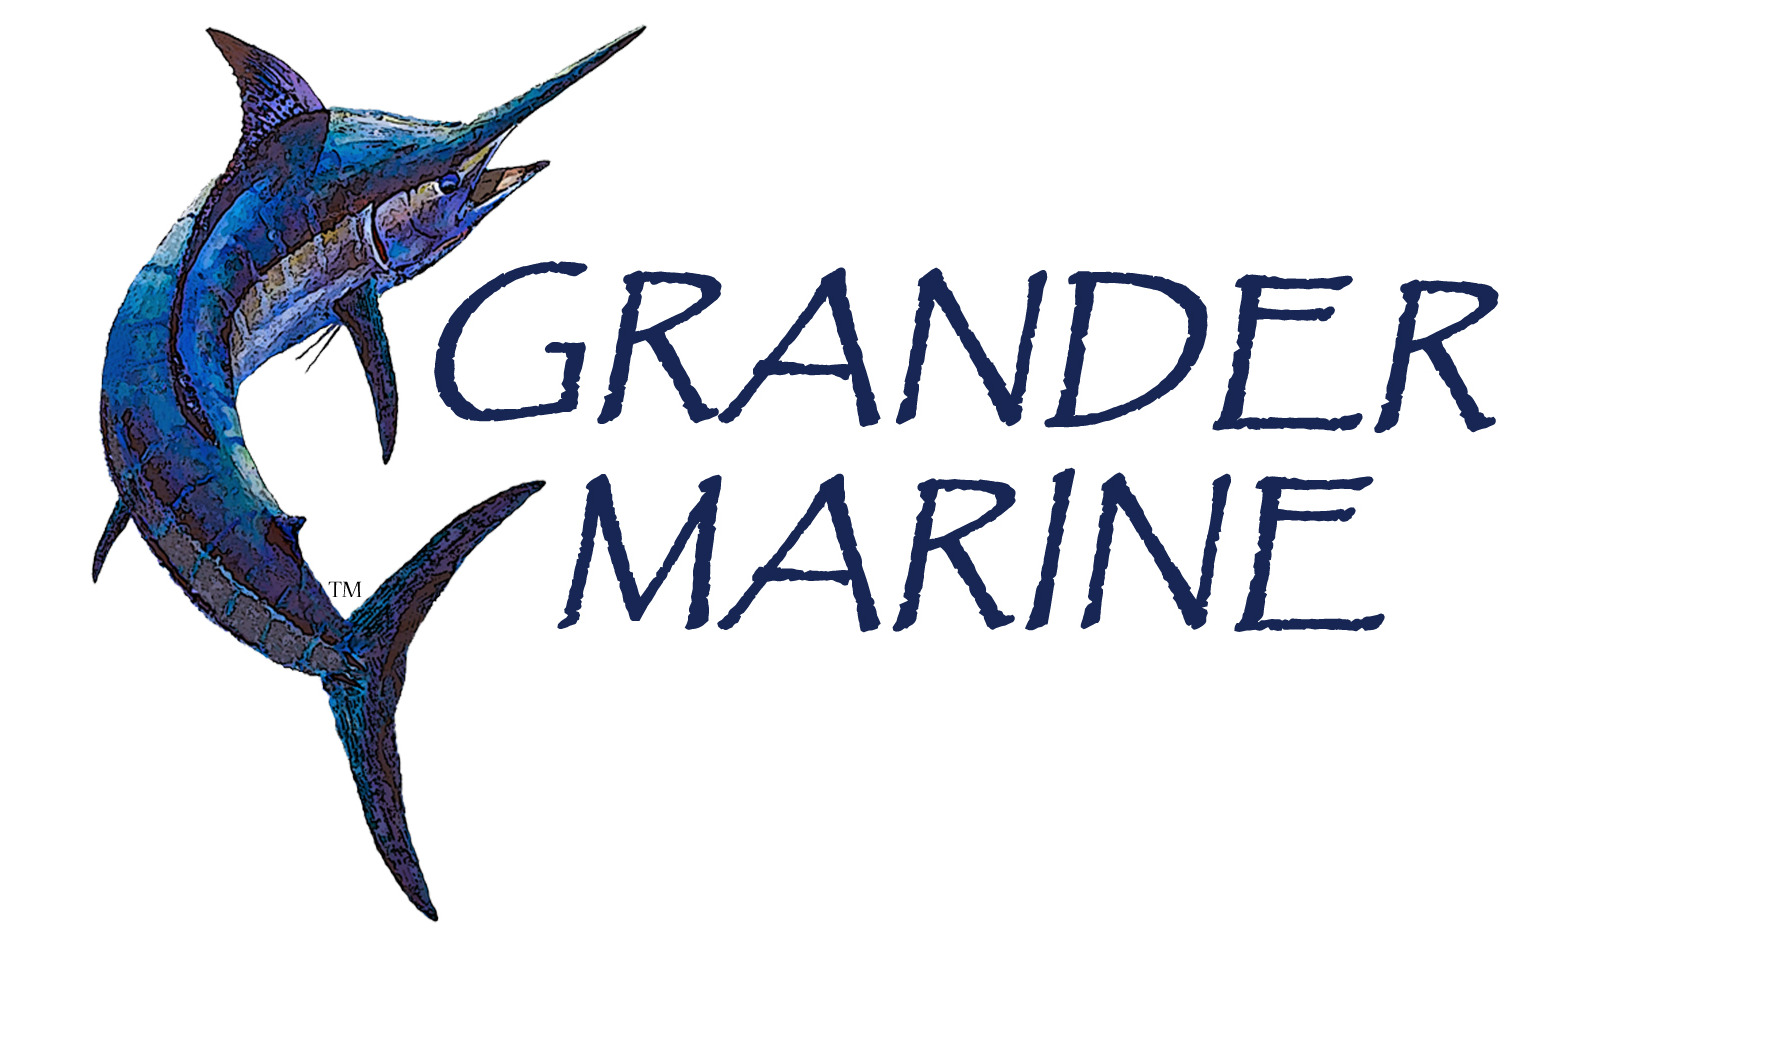 Grander Marine, Barber Marina, Pink Fish Marketing Clients